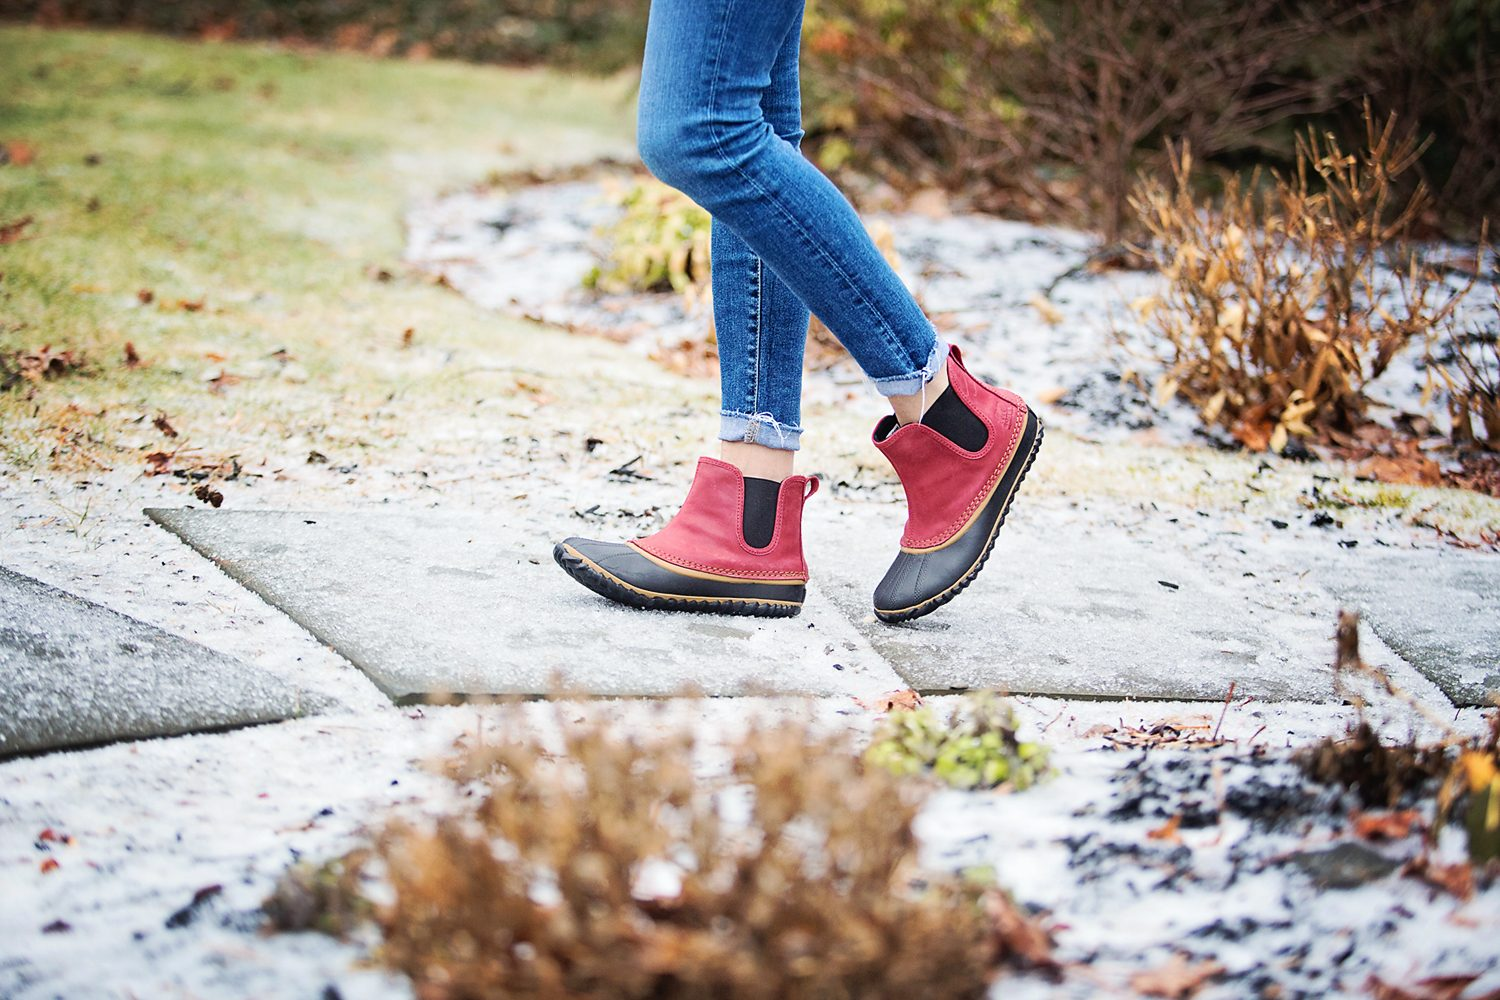 The motherchic wearing sorel chelsea boots